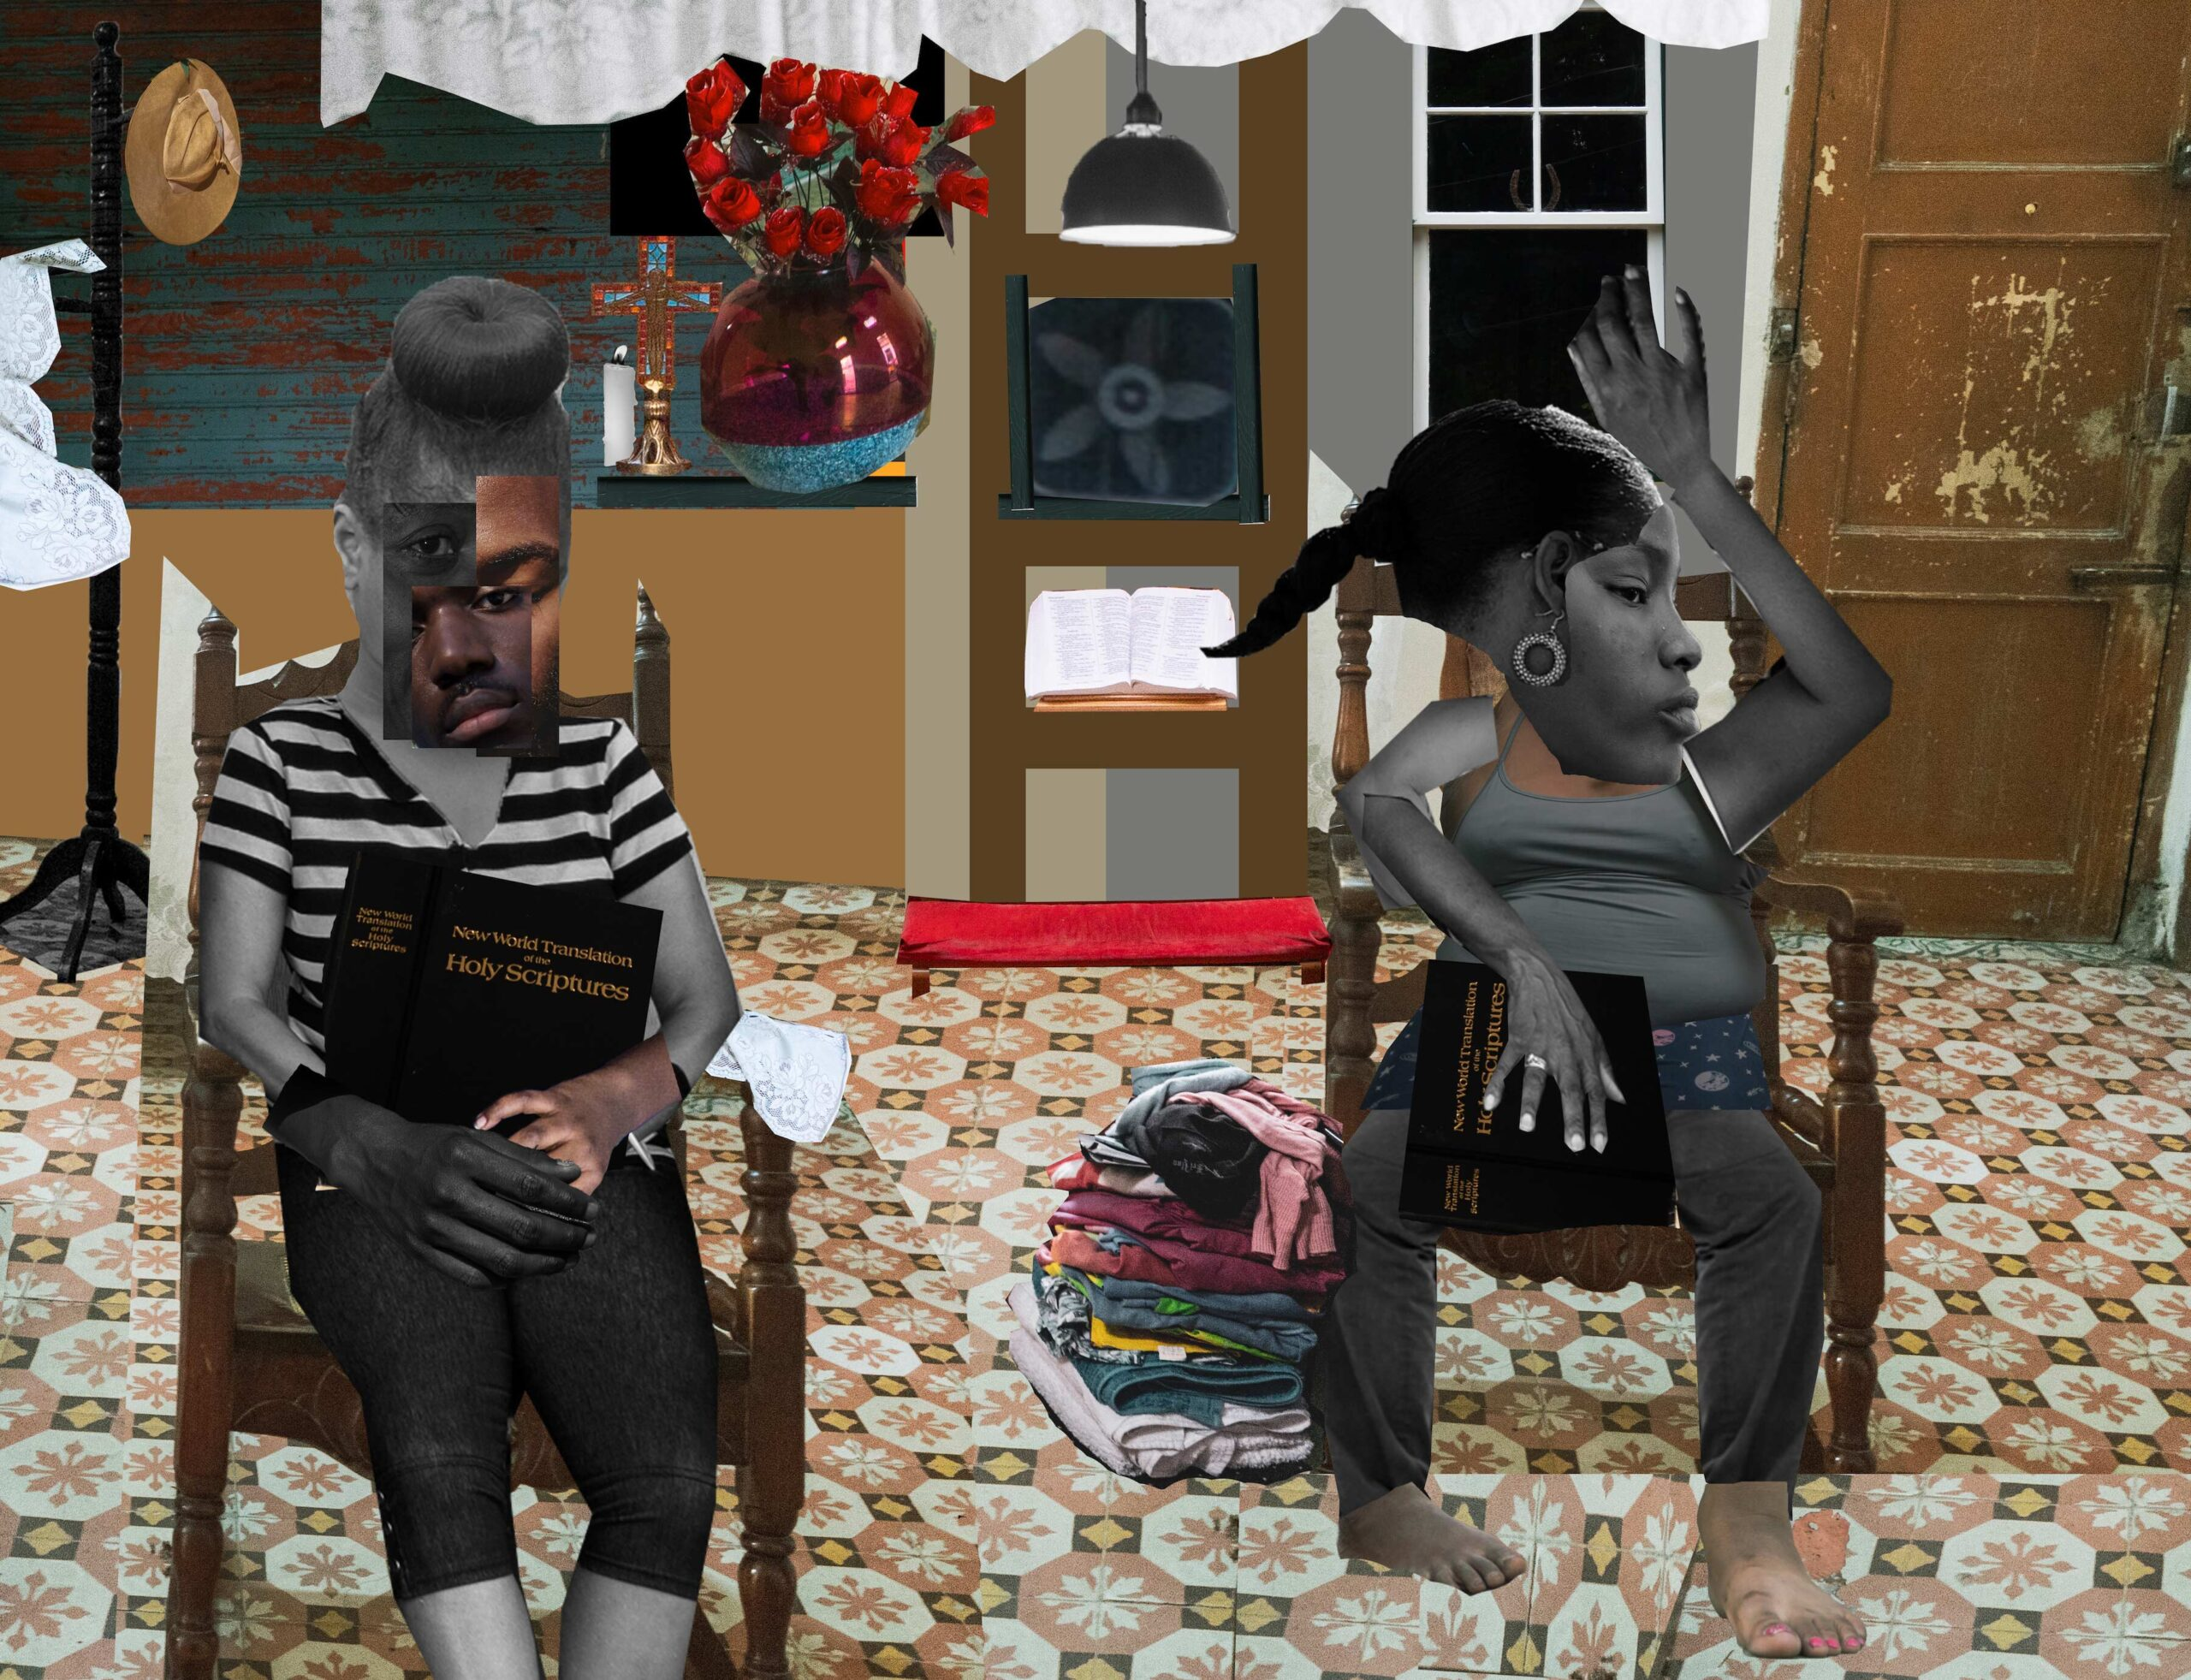 <i>Courtesy SHAN Wallace</i><br/>Westminister (2020) by SHAN Wallace is Wallace's solo exhibition